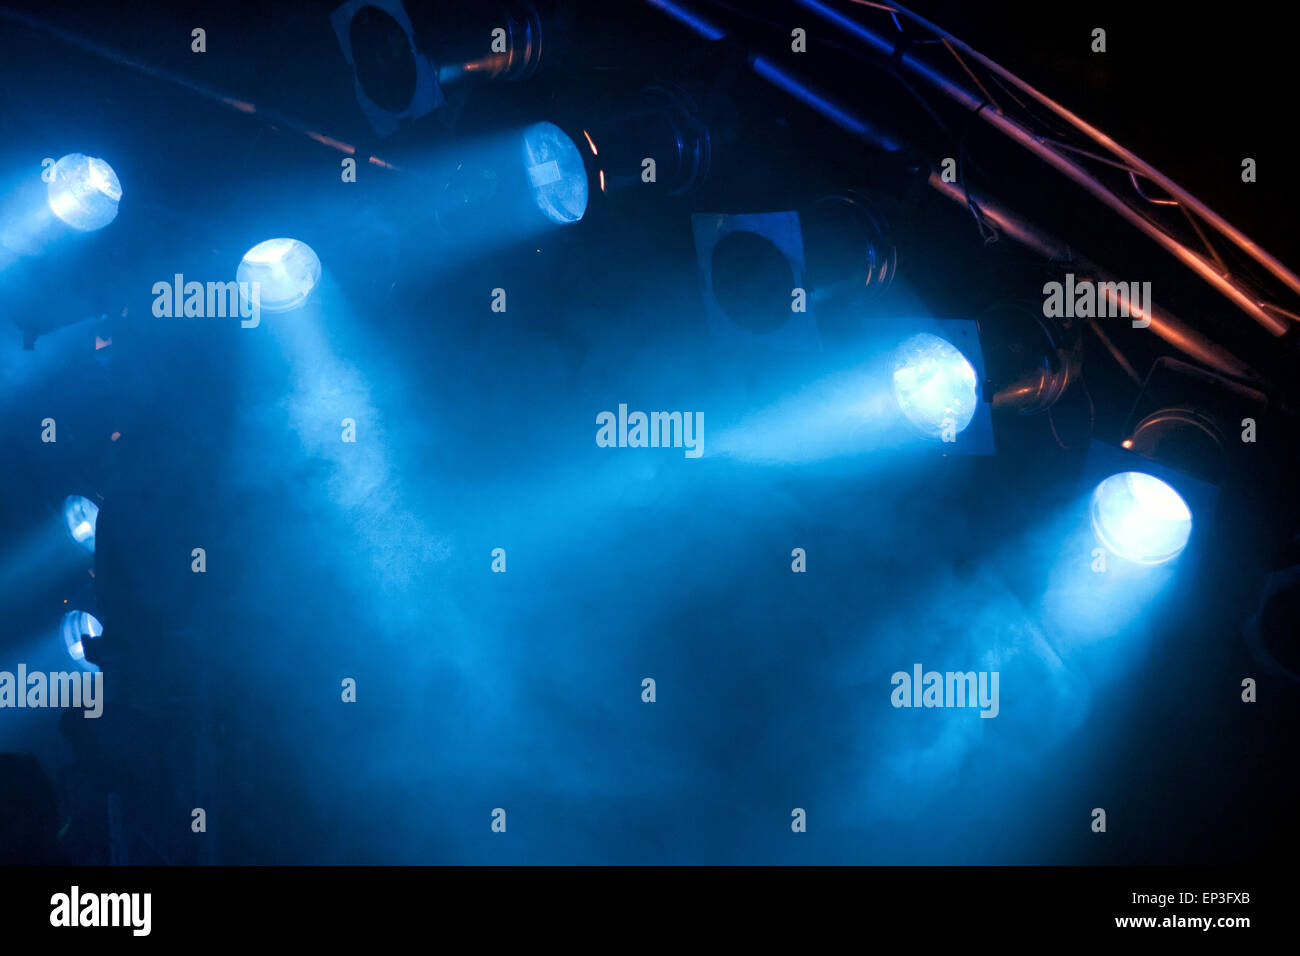 Several blue stage lights in the dark - Stock Image